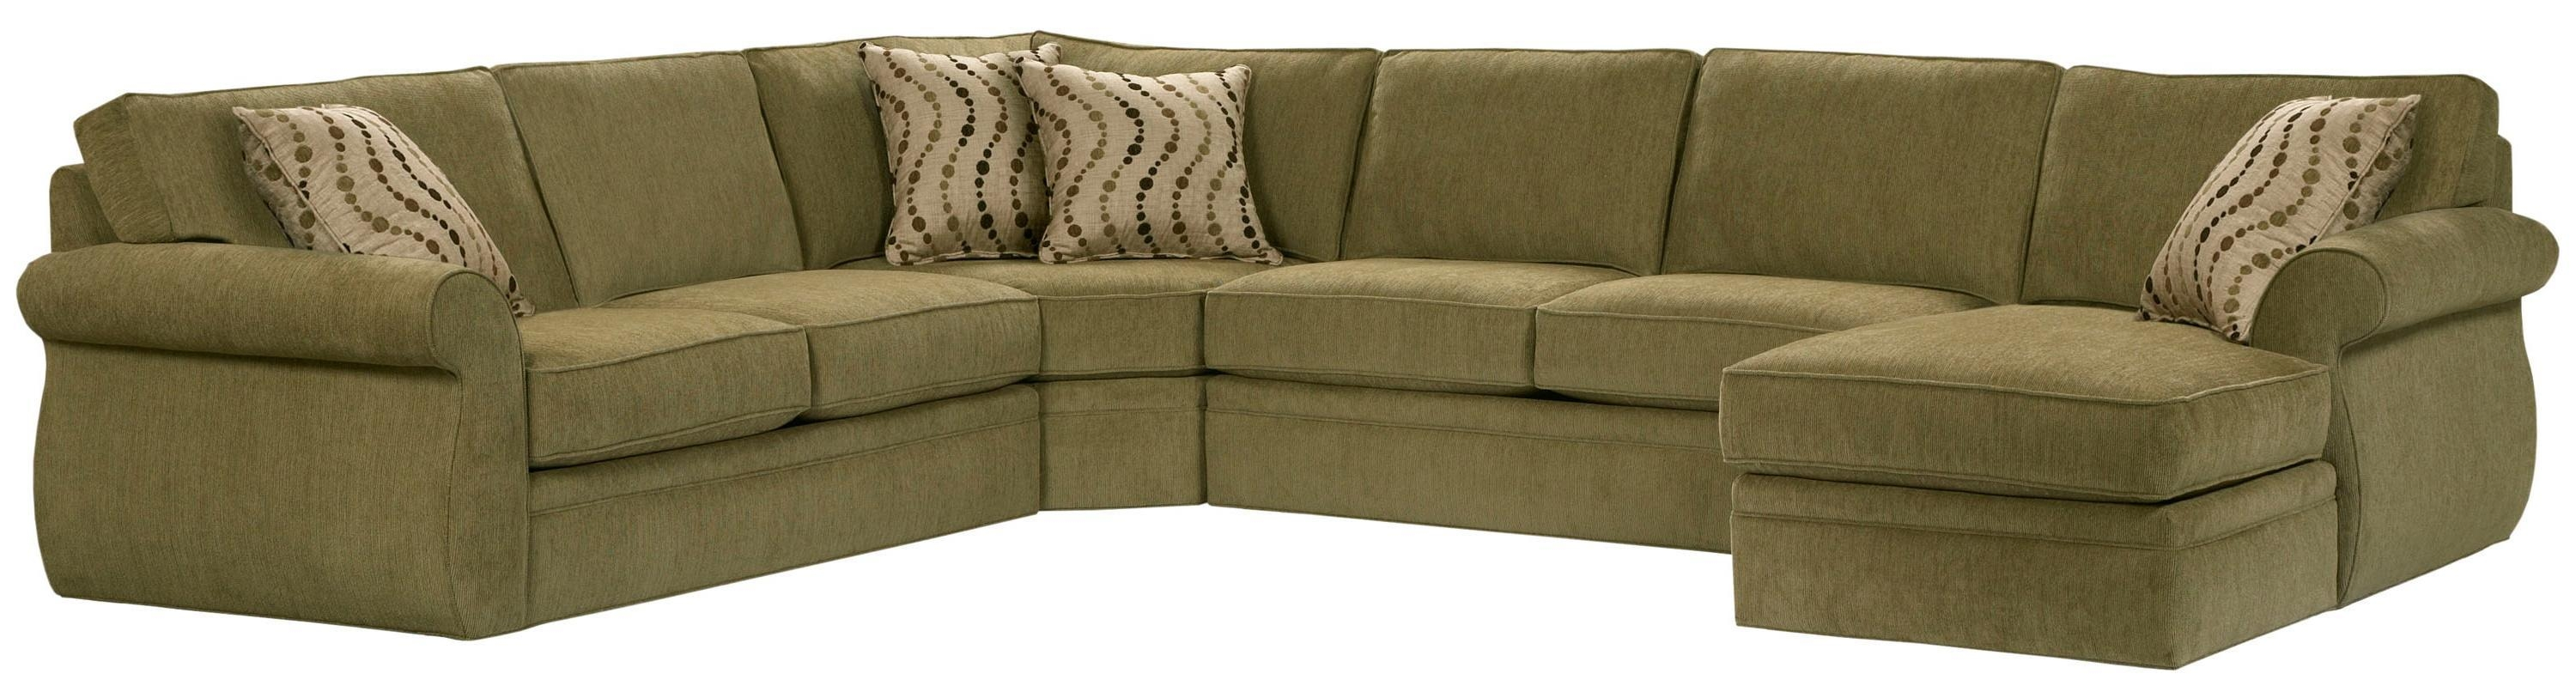 broyhill sleeper sofa curved sectional modern 20 inspirations sofas ideas